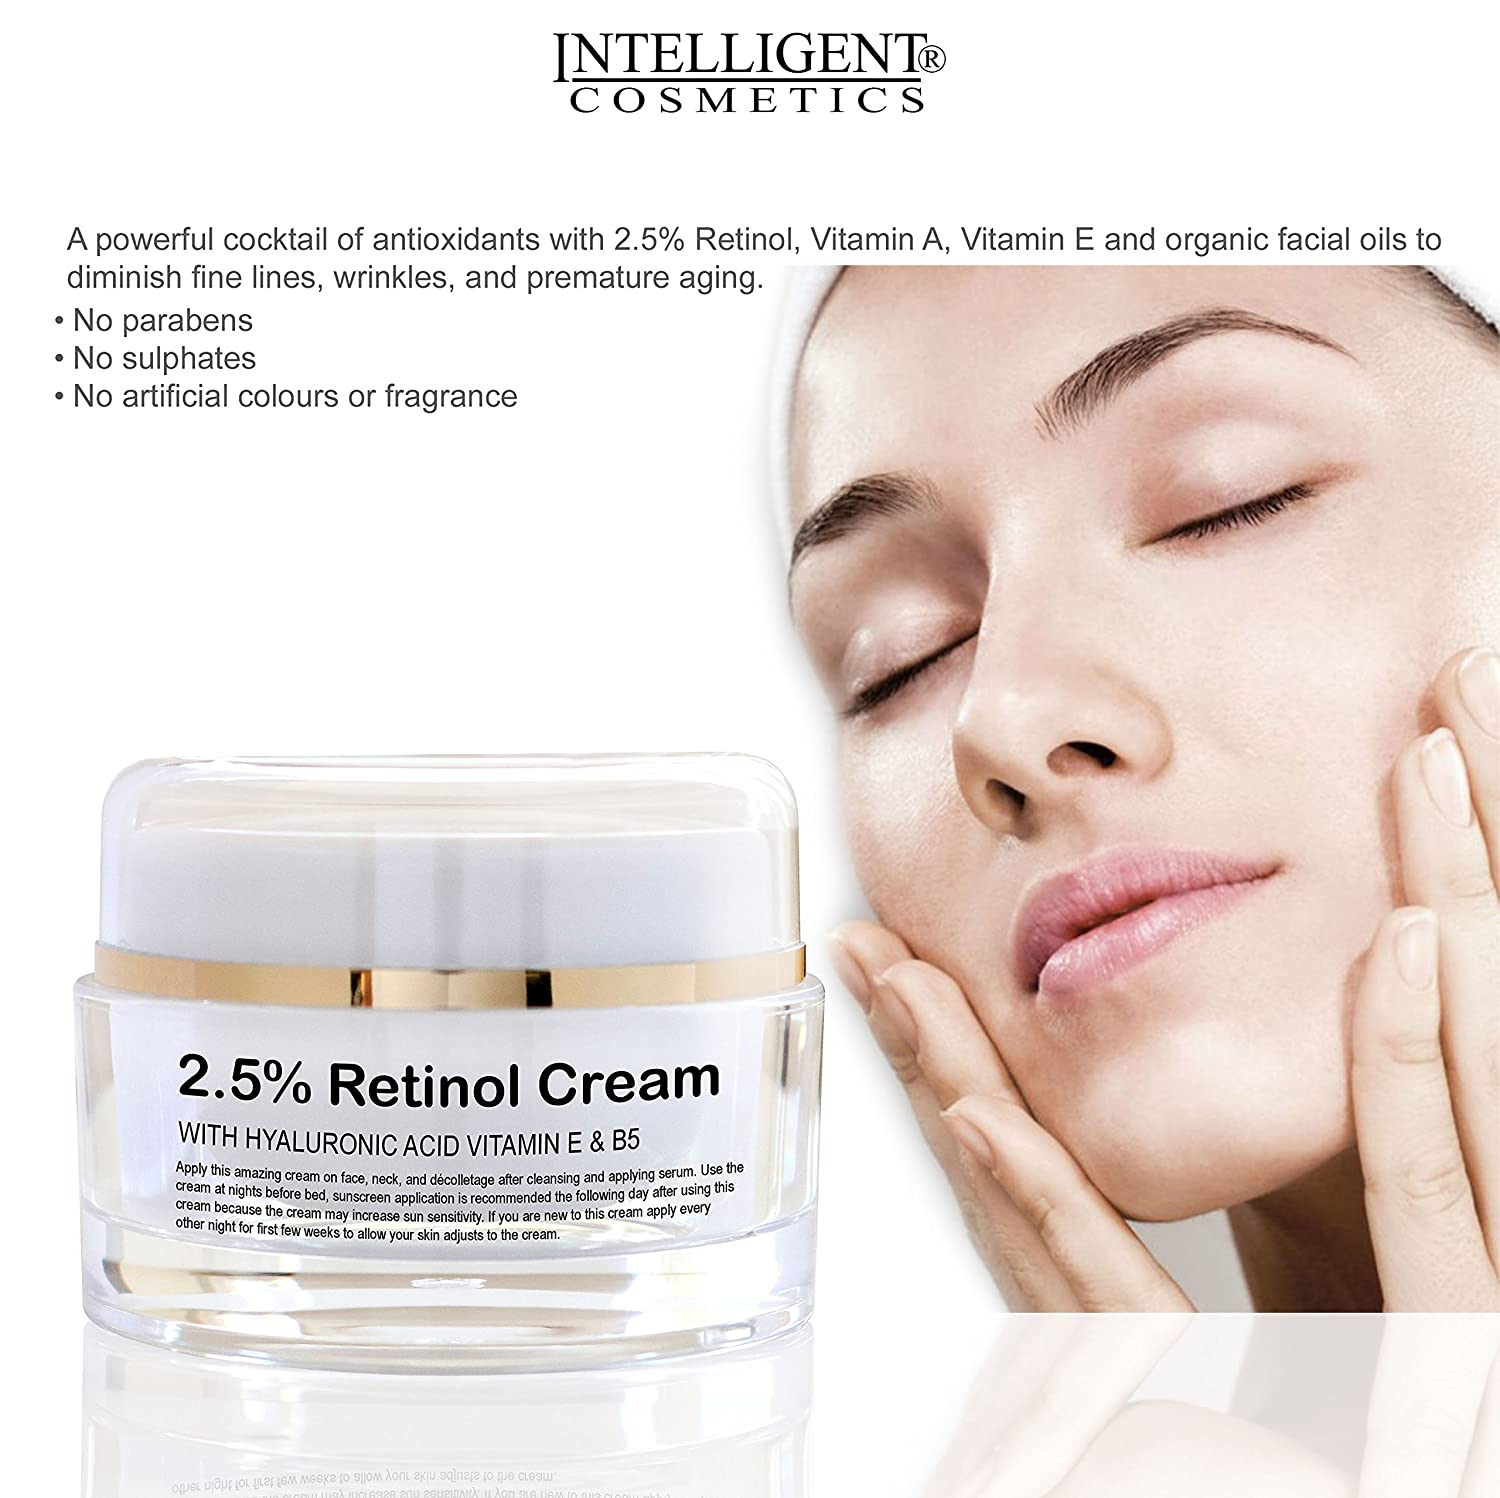 25 Retinol Collagen Rejuvenating Cream With Hyaluronic Acid Vitamin E Facial Serum Oil Skin Care Anti Aging Moisturizing B5 And Organic Oils Powerful Ageing Wrinkle Moisturiser